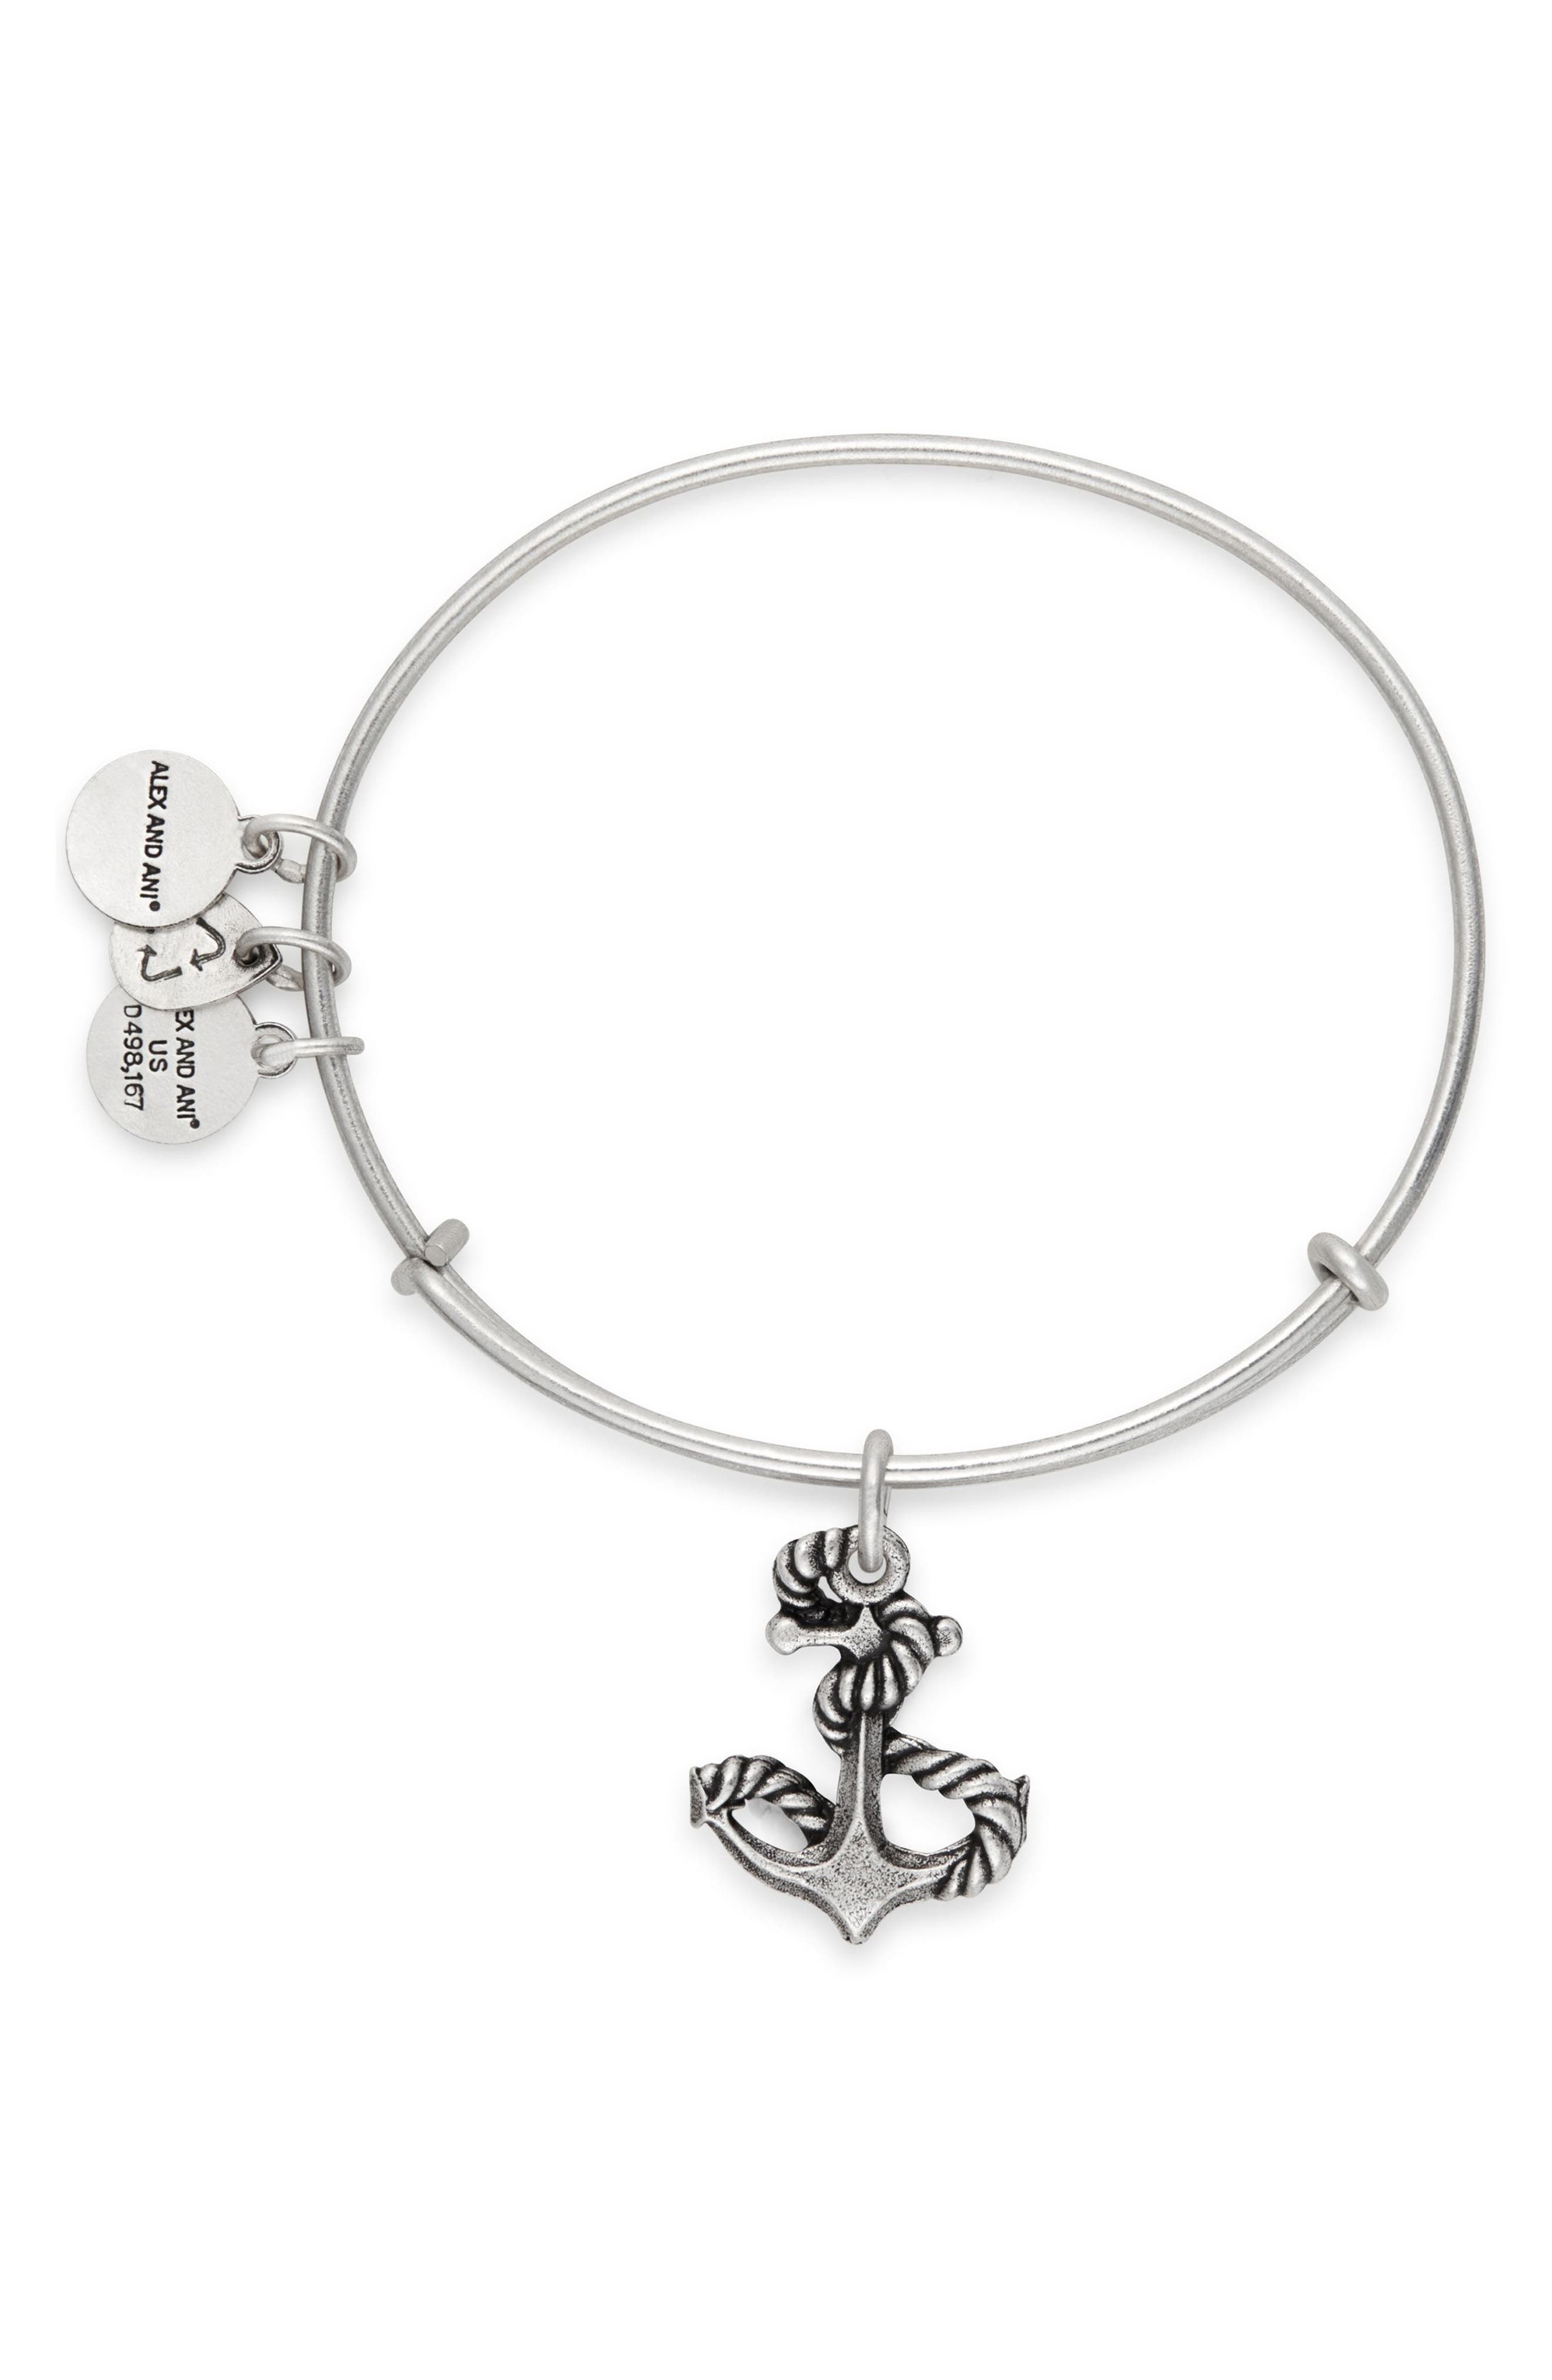 Anchor Adjustable Wire Bangle,                             Alternate thumbnail 2, color,                             040